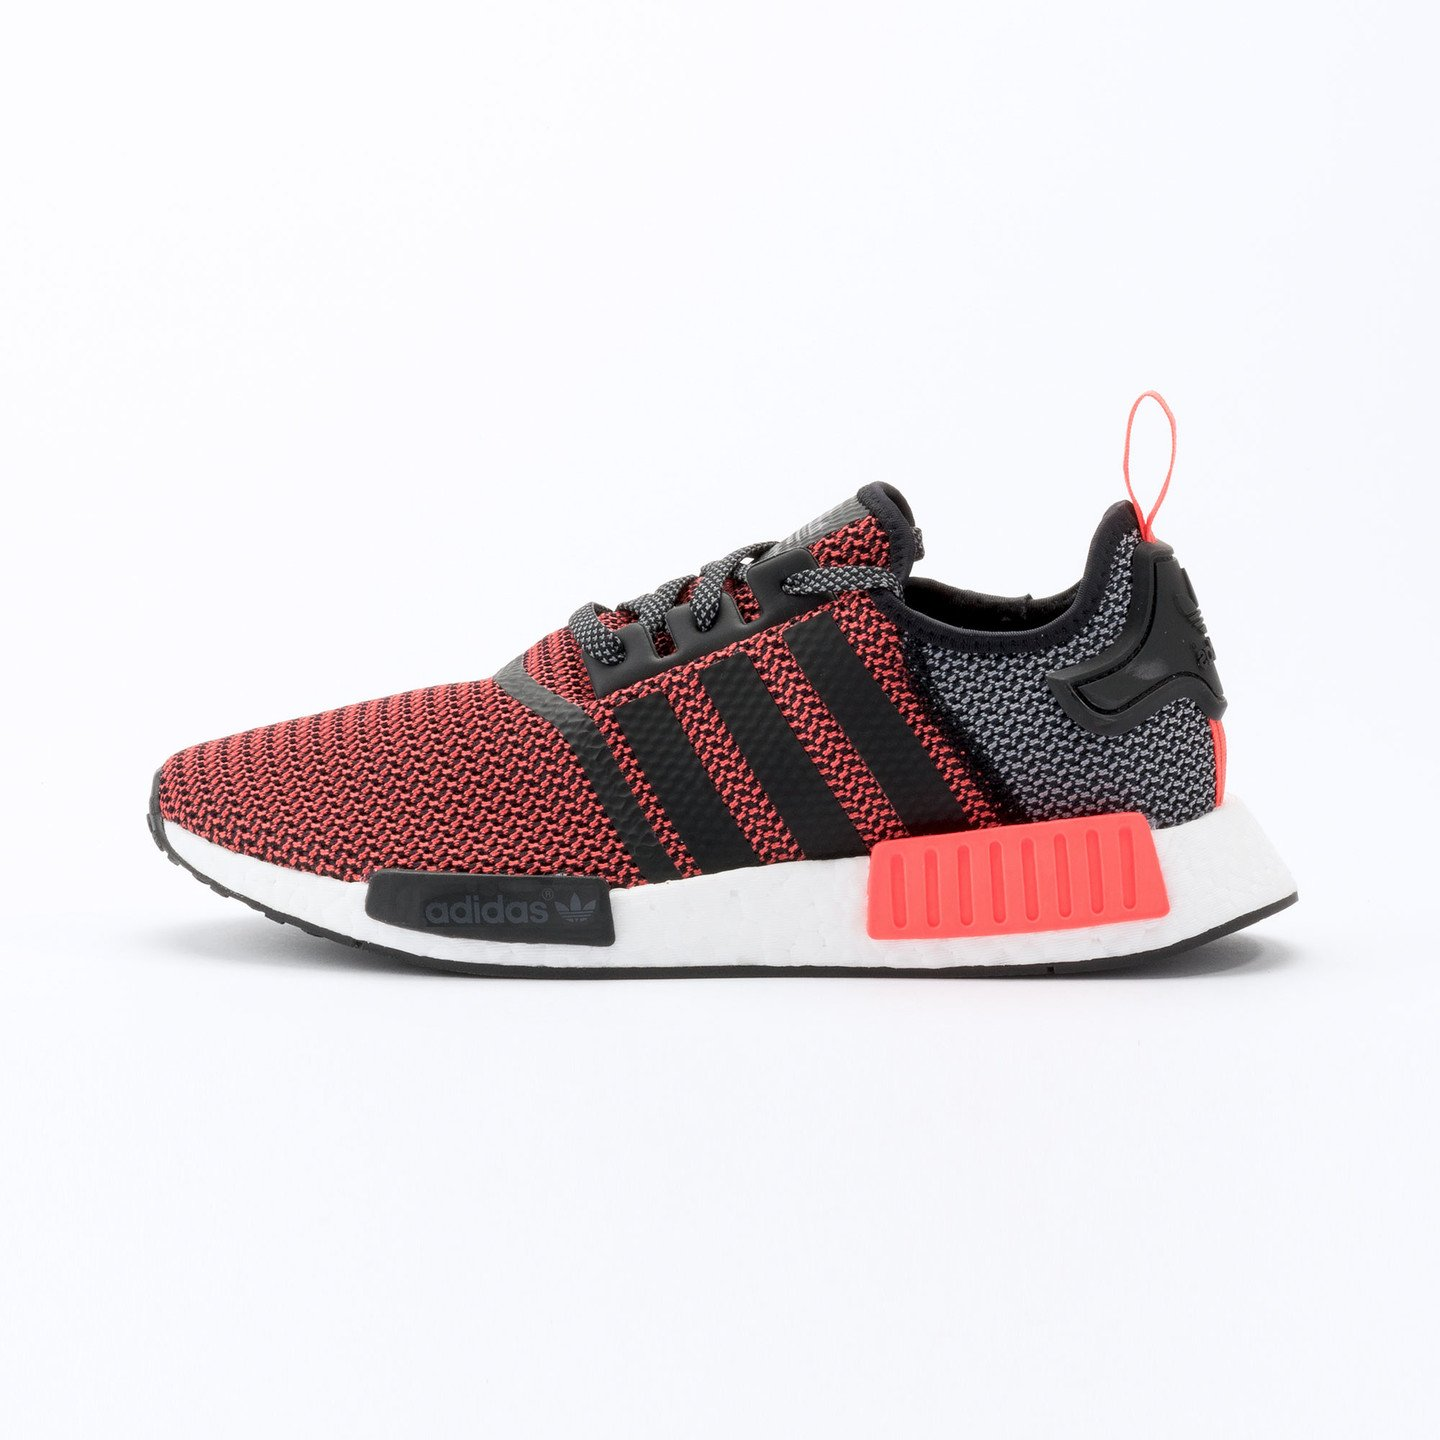 Adidas NMD R1 Runner Lush Red / Core Black S79158-47.33